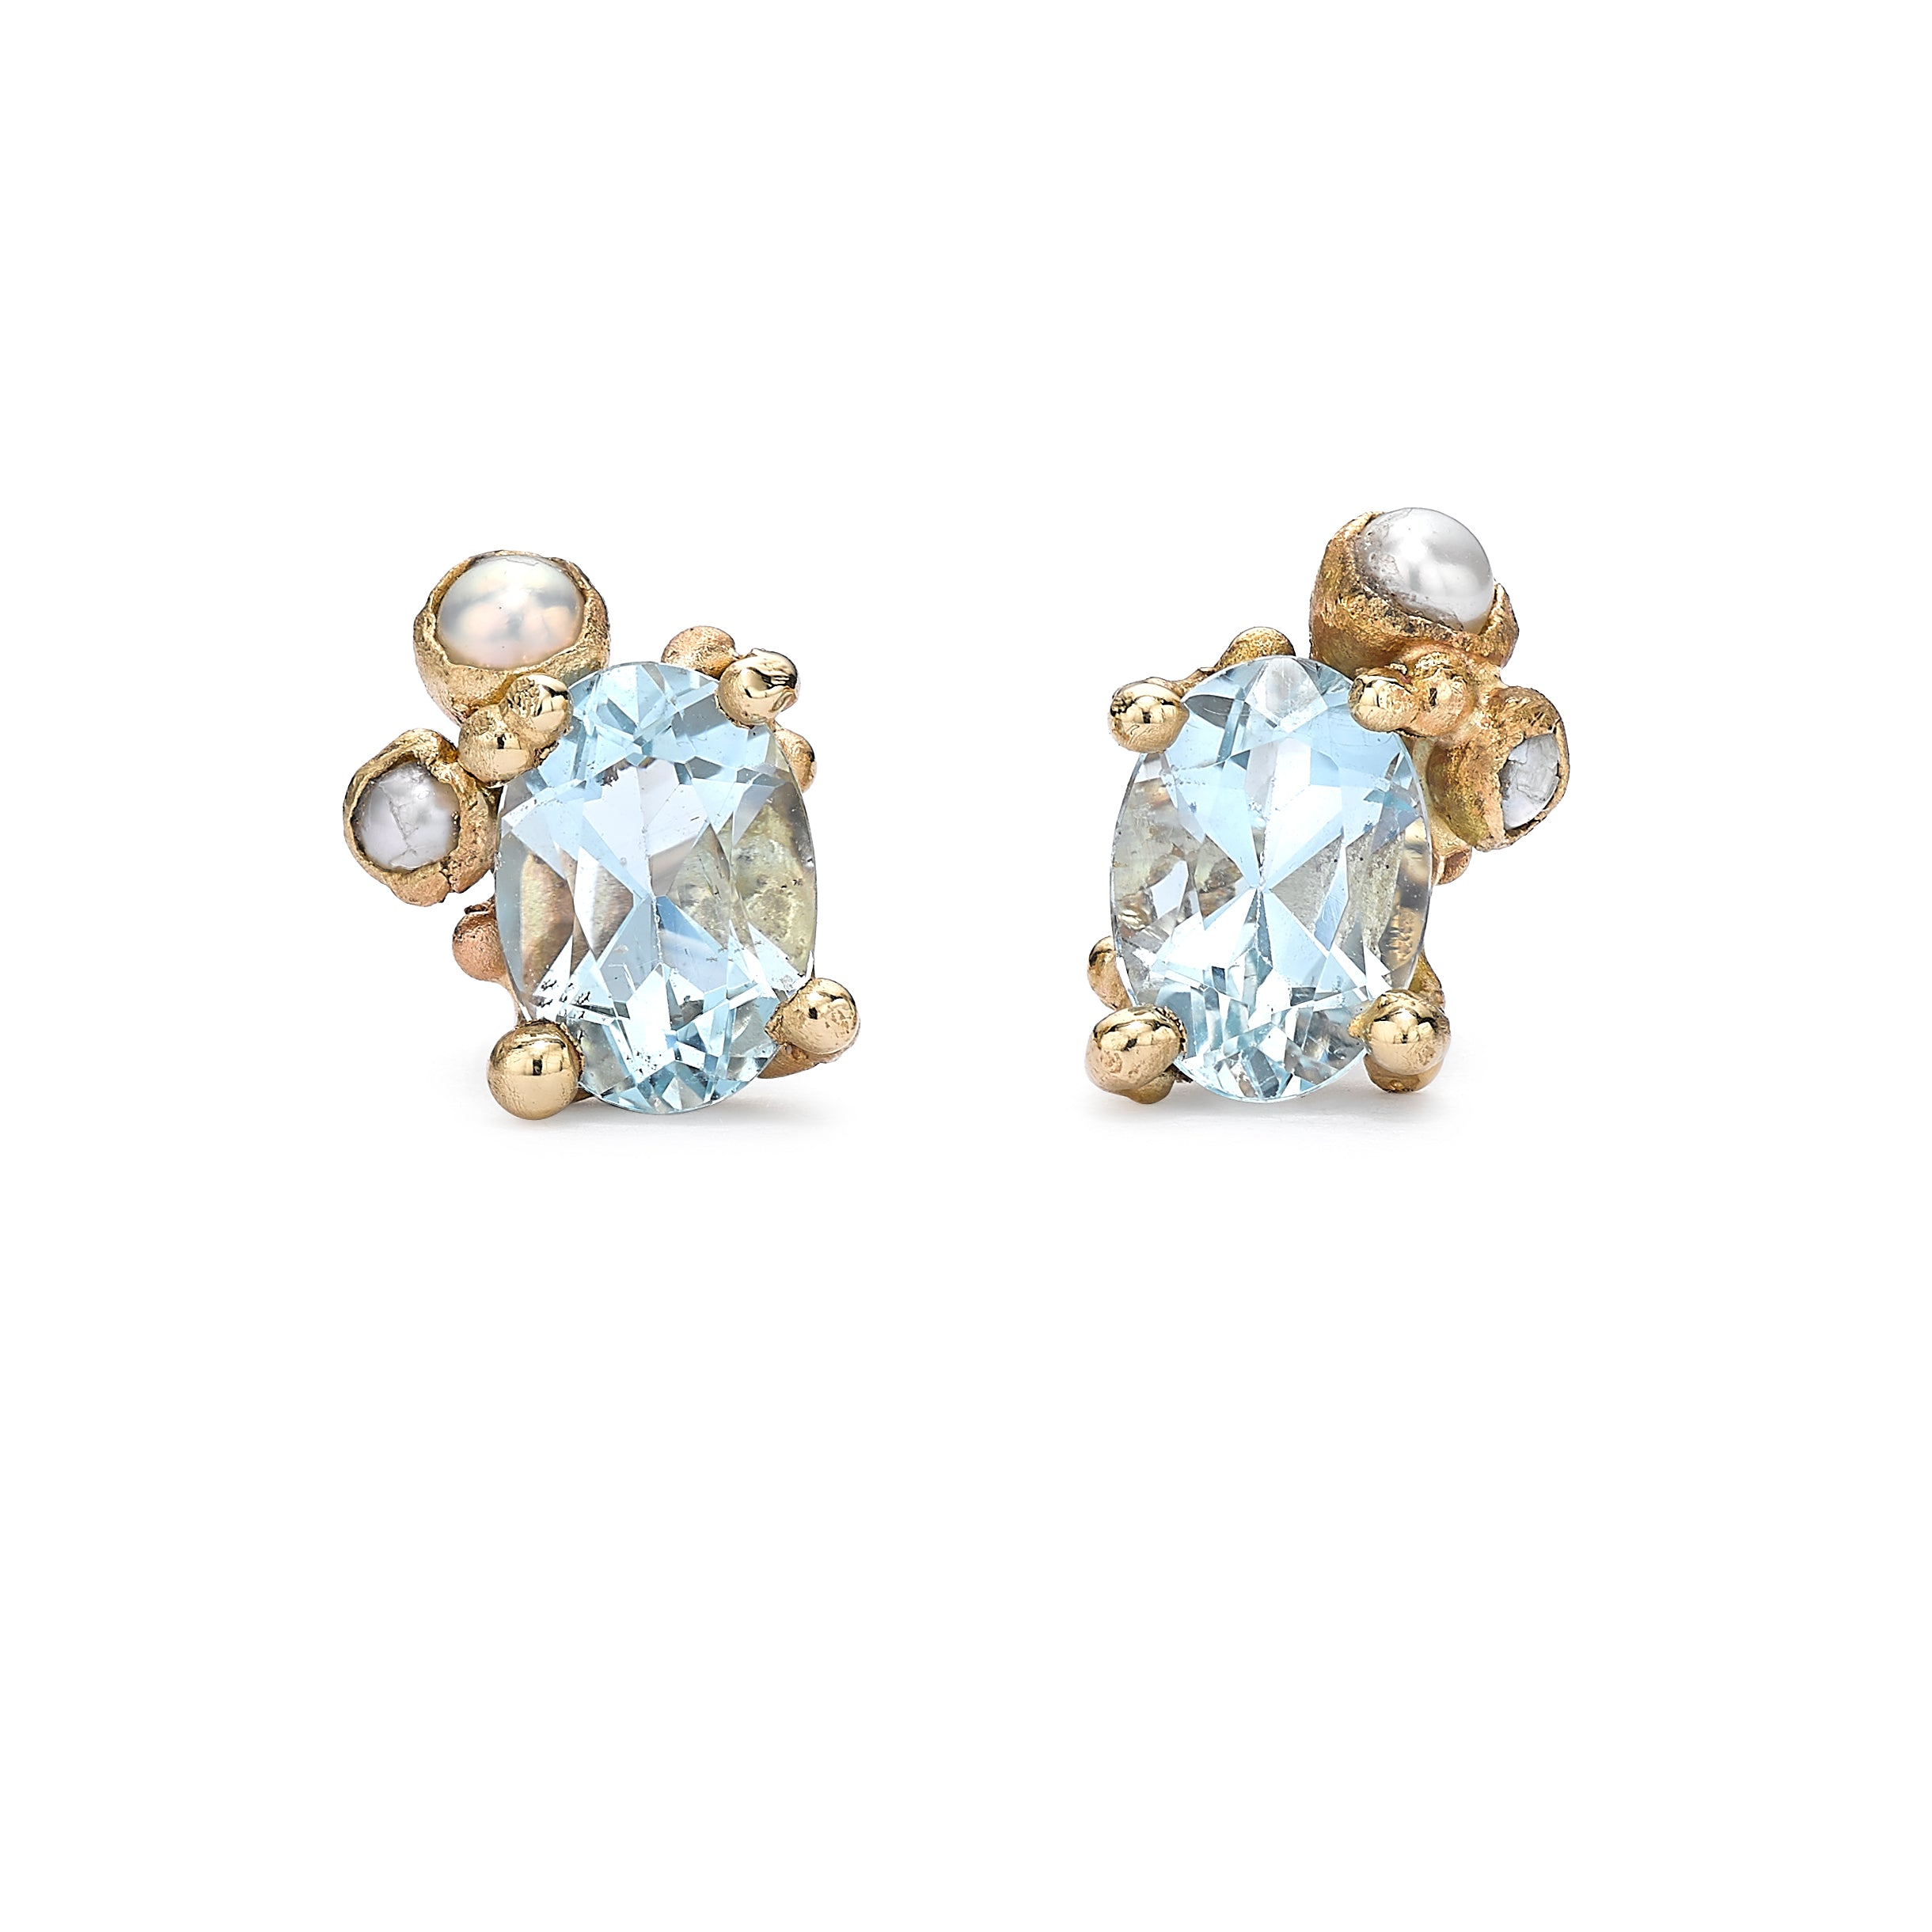 Aquamarine and pearl studs in yellow gold by Ruth Tomlinson, handmade in London